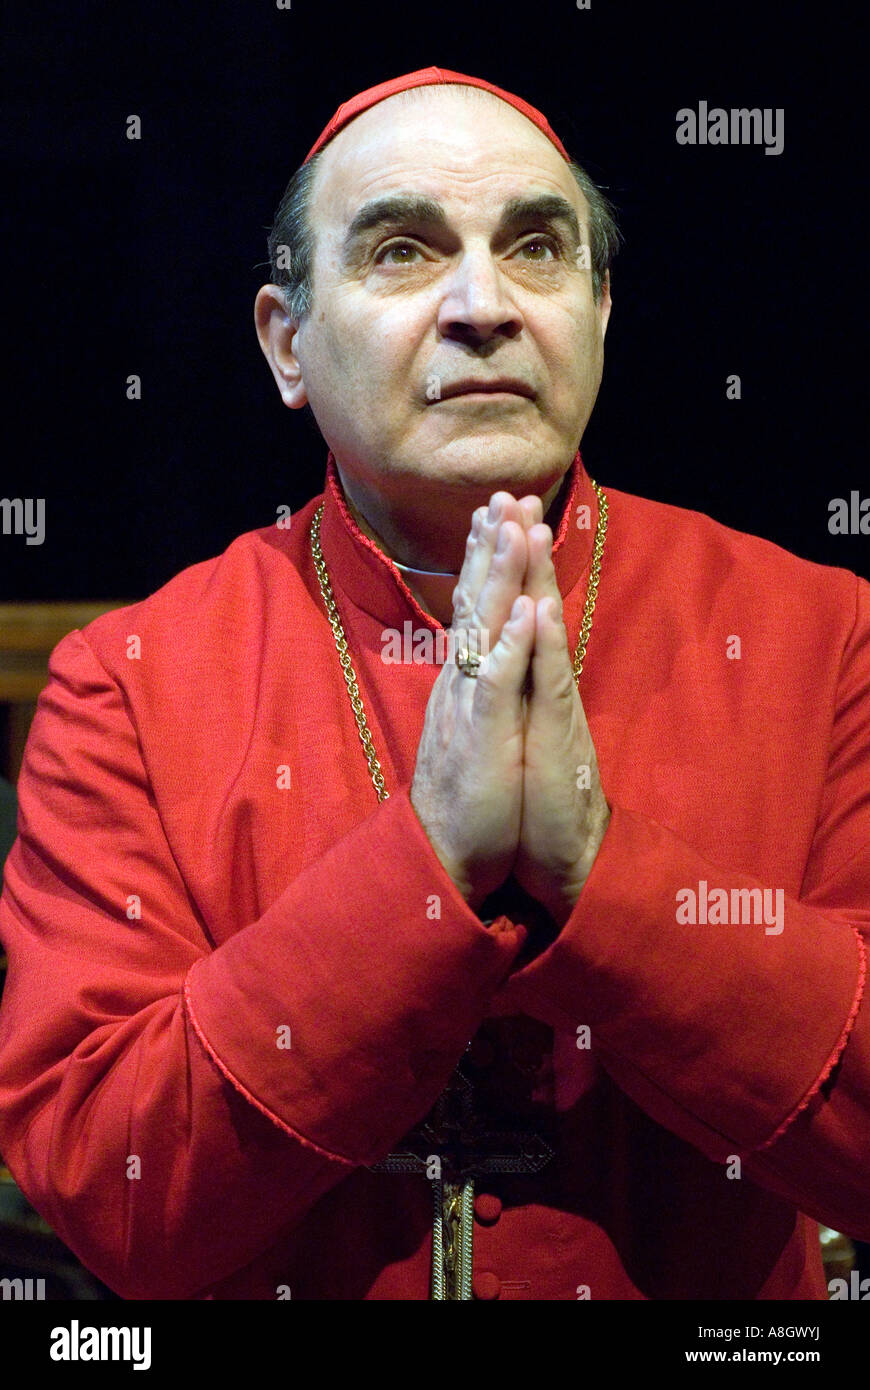 David Suchet playing Cardinal Benelli in The Last Confession Chichester Festival Theatre - Stock Image